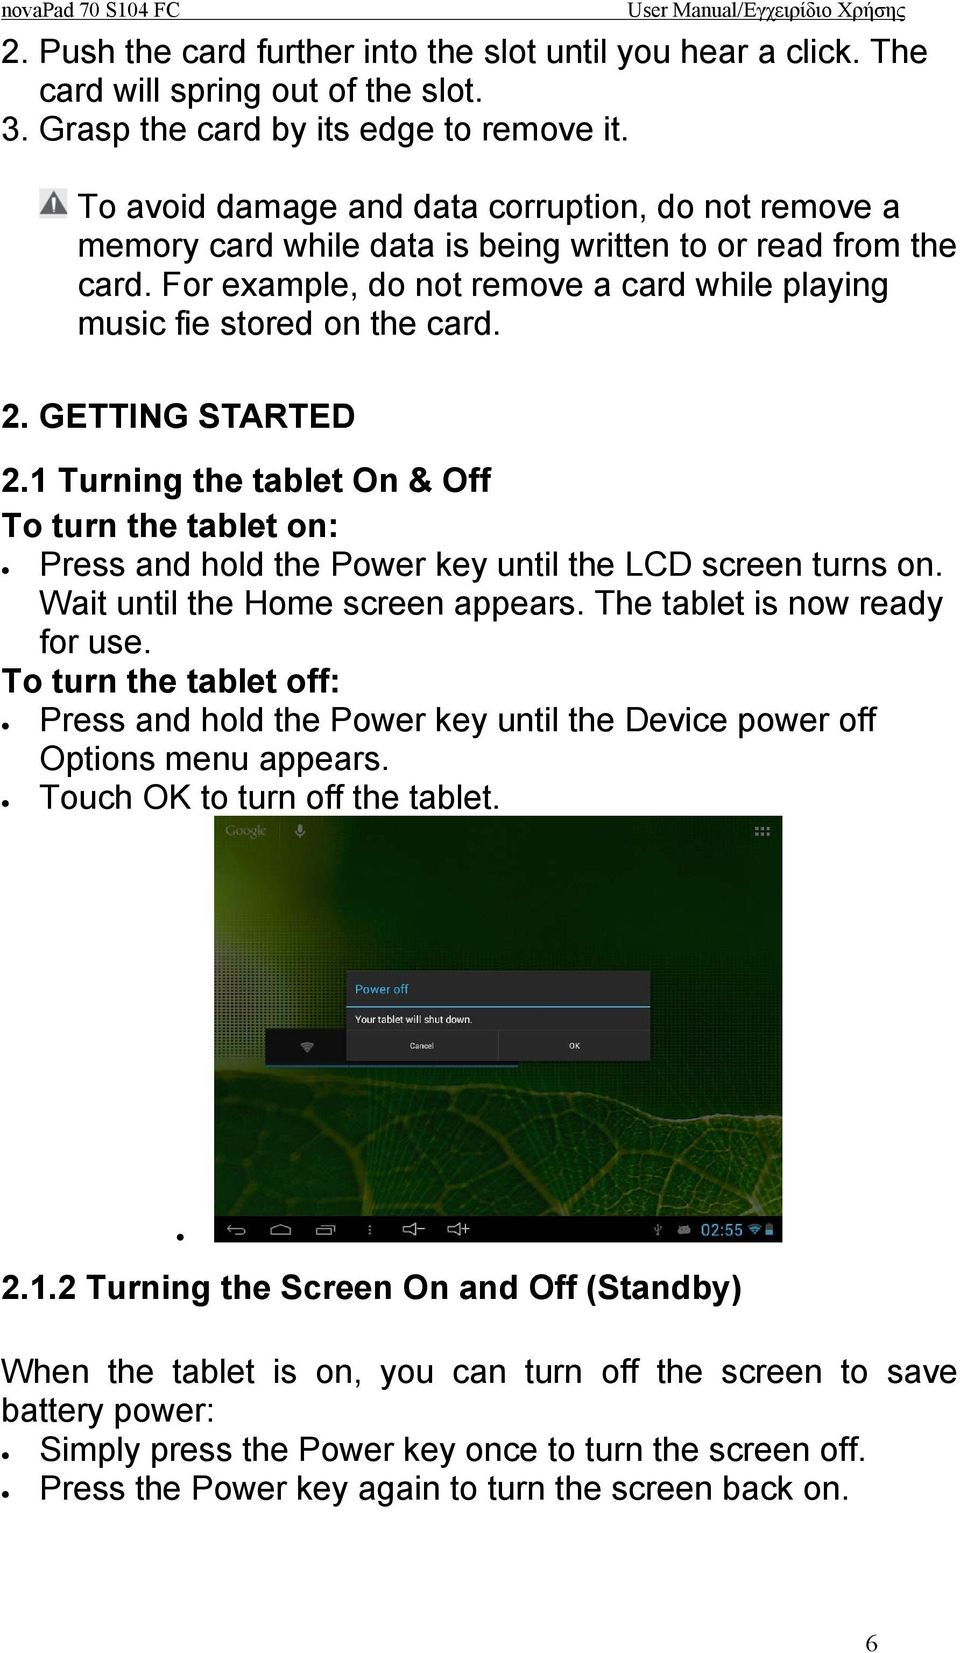 GETTING STARTED 2.1 Turning the tablet On & Off To turn the tablet on: Press and hold the Power key until the LCD screen turns on. Wait until the Home screen appears. The tablet is now ready for use.